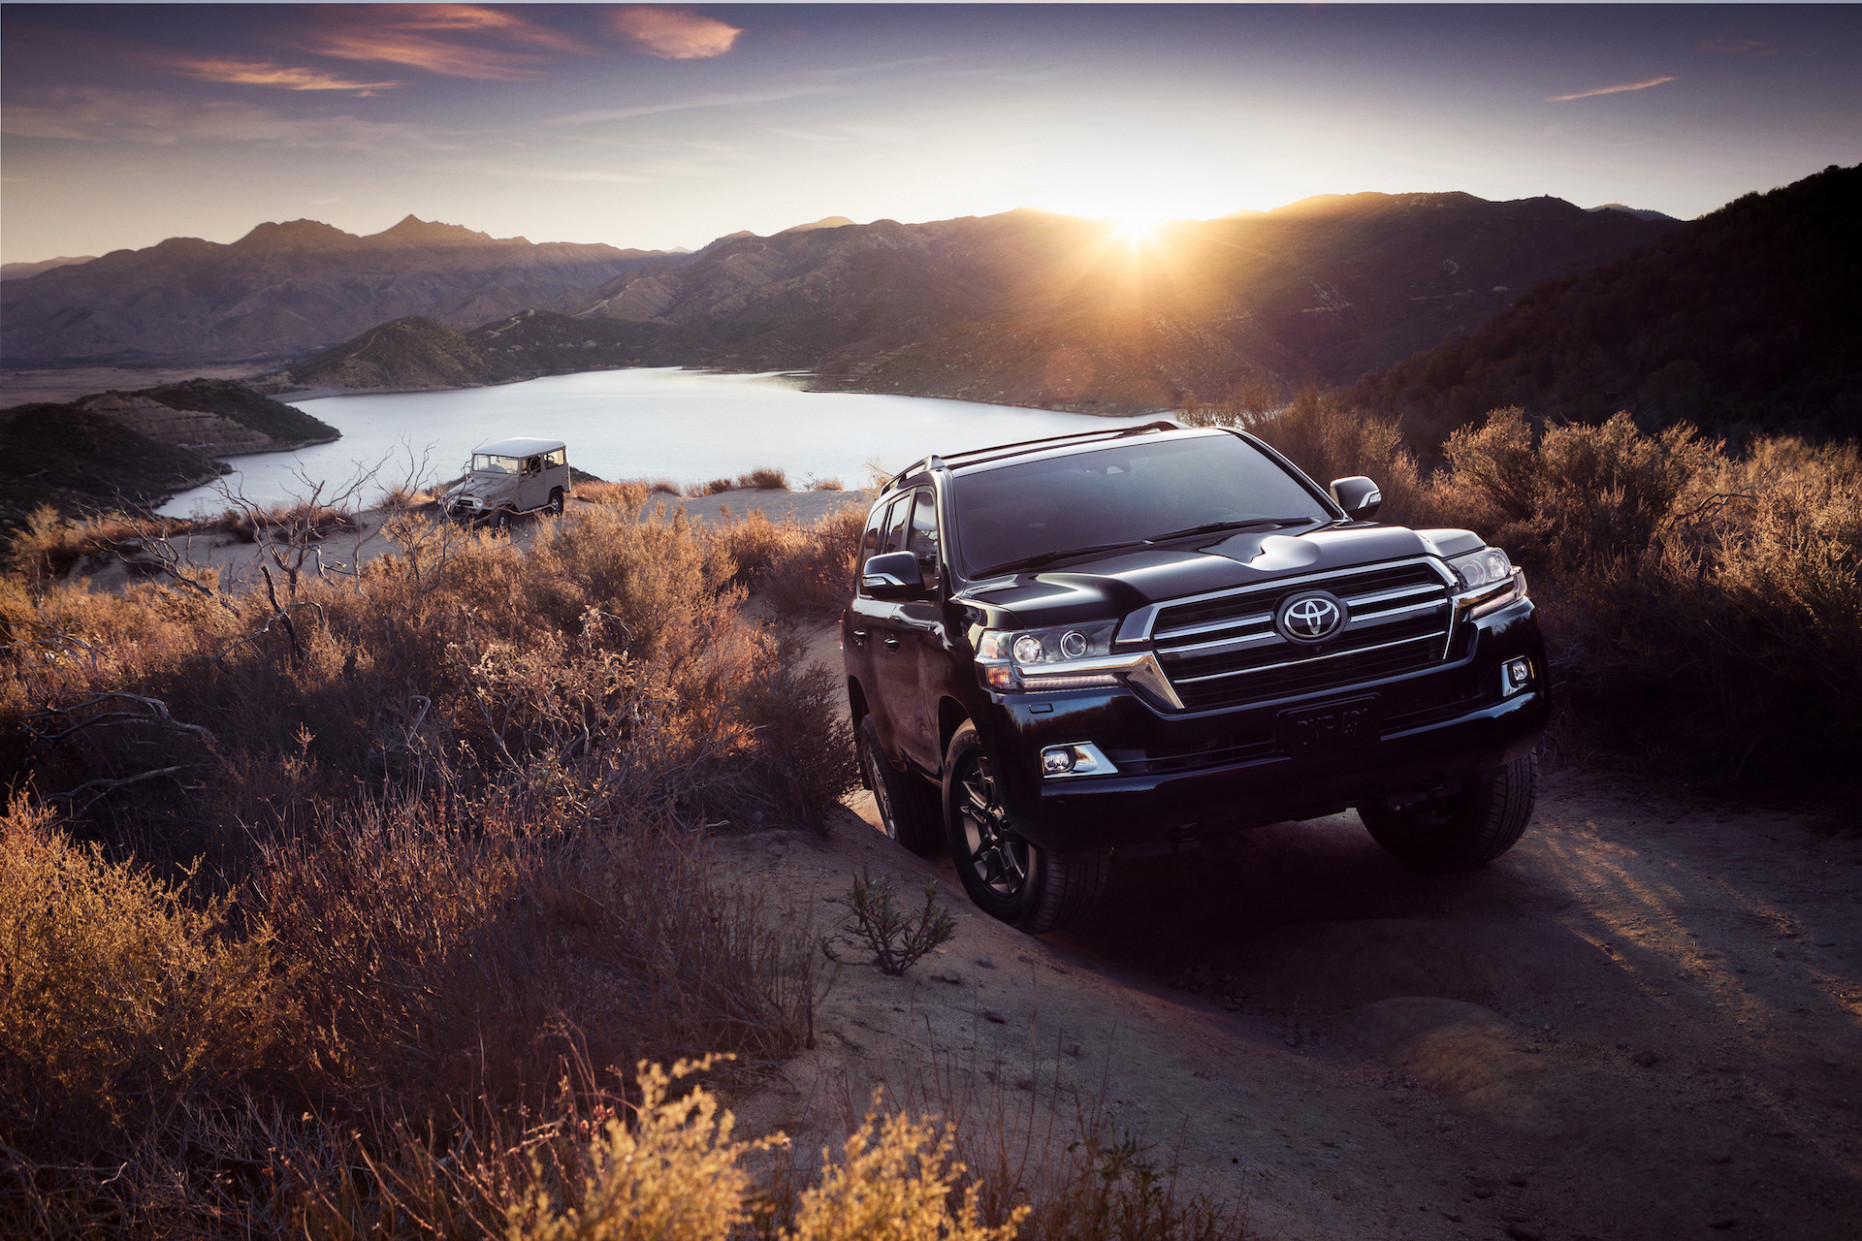 You need $6,6 to buy the 6 Toyota Land Cruiser Heritage Edition - 2020 toyota land cruiser msrp